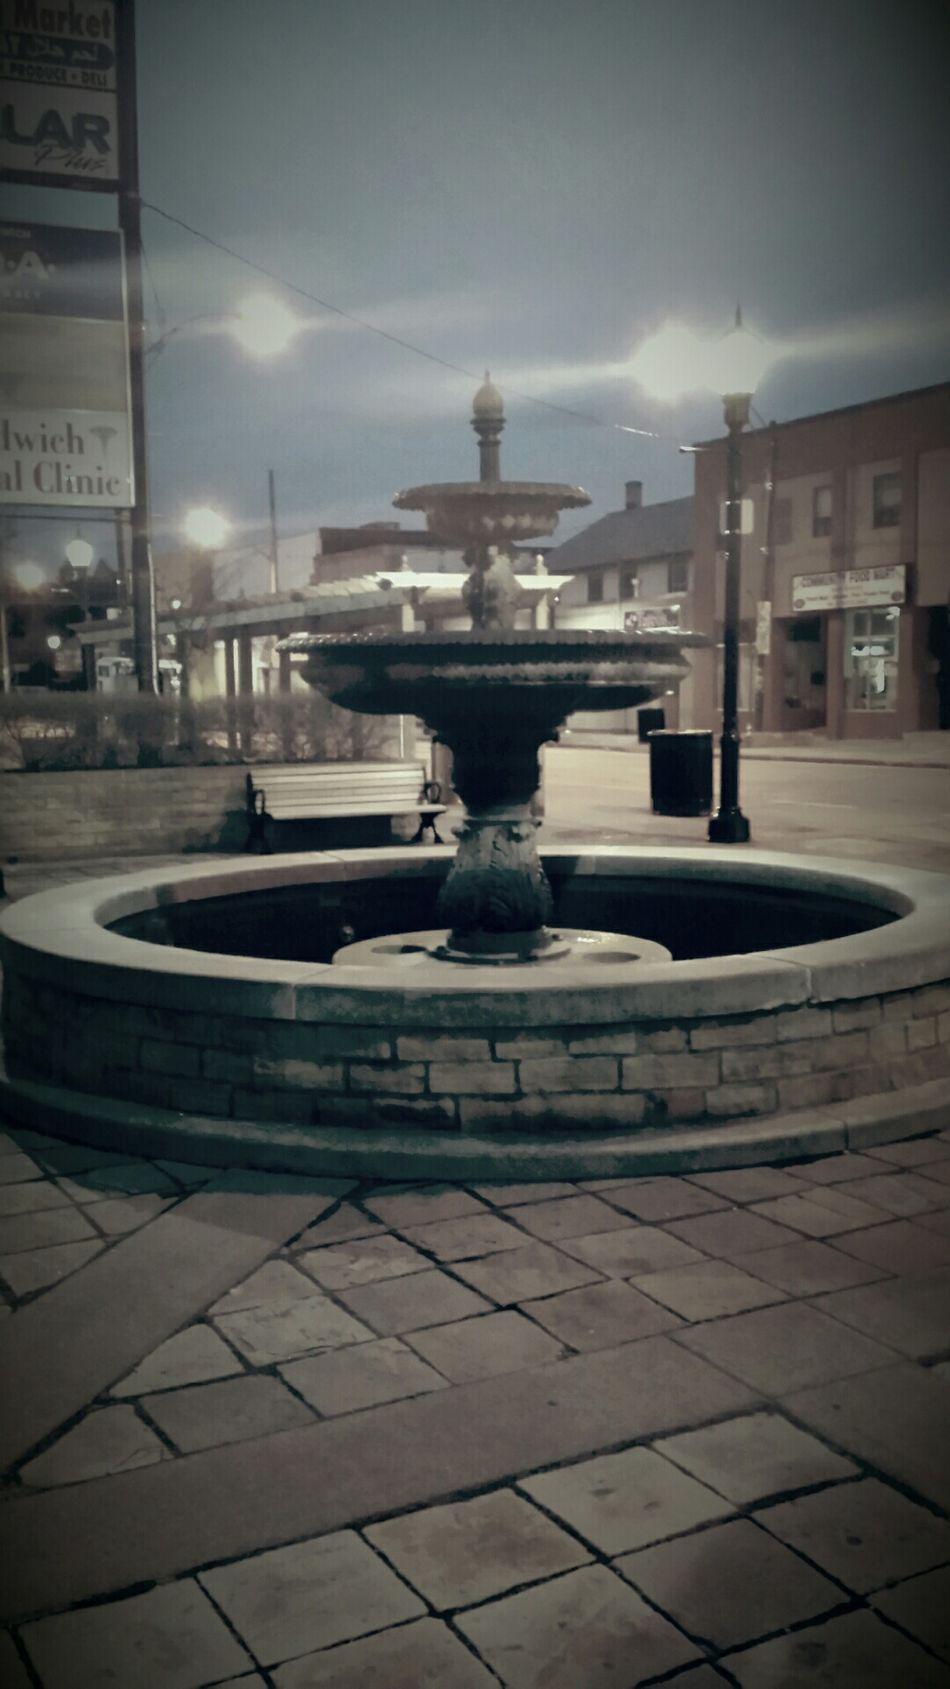 Sanwich village postal office fountain.keep it there city of Windsor its too beautyfull Hanging Out Your Art Is Portable With Caseable Me, My Camera And I God Send Me An Angel ❤